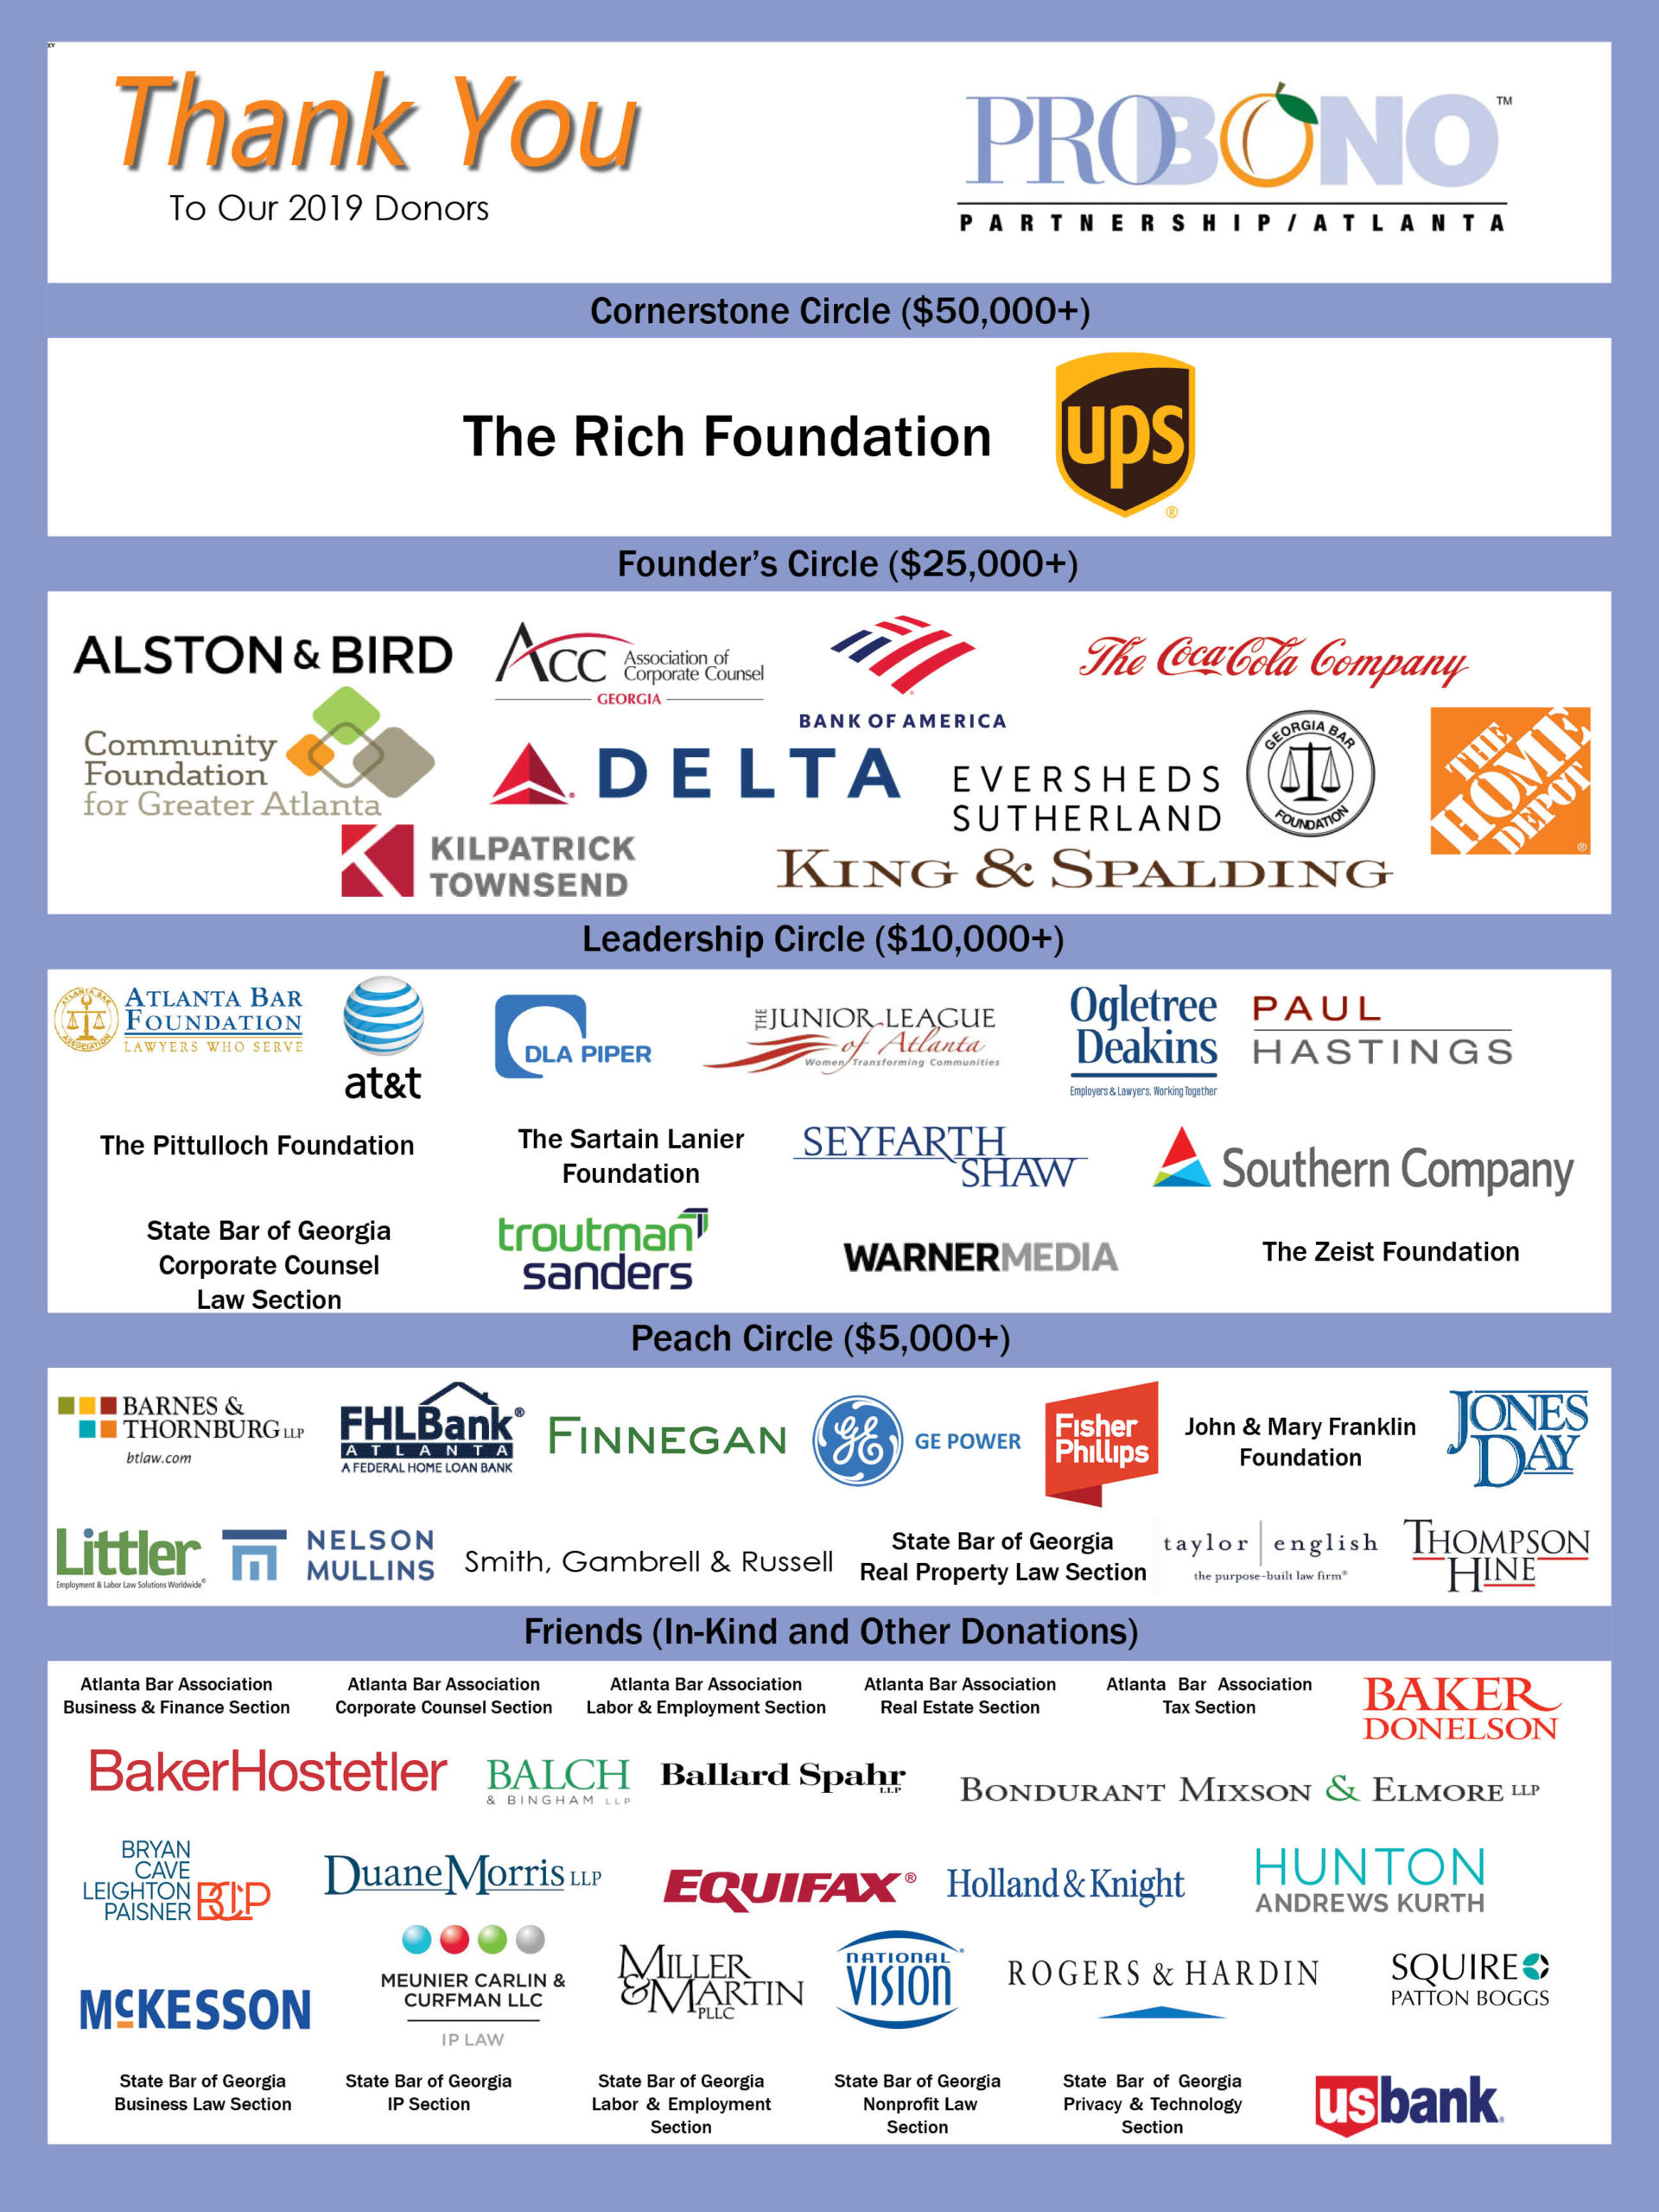 List of Donors in 2019